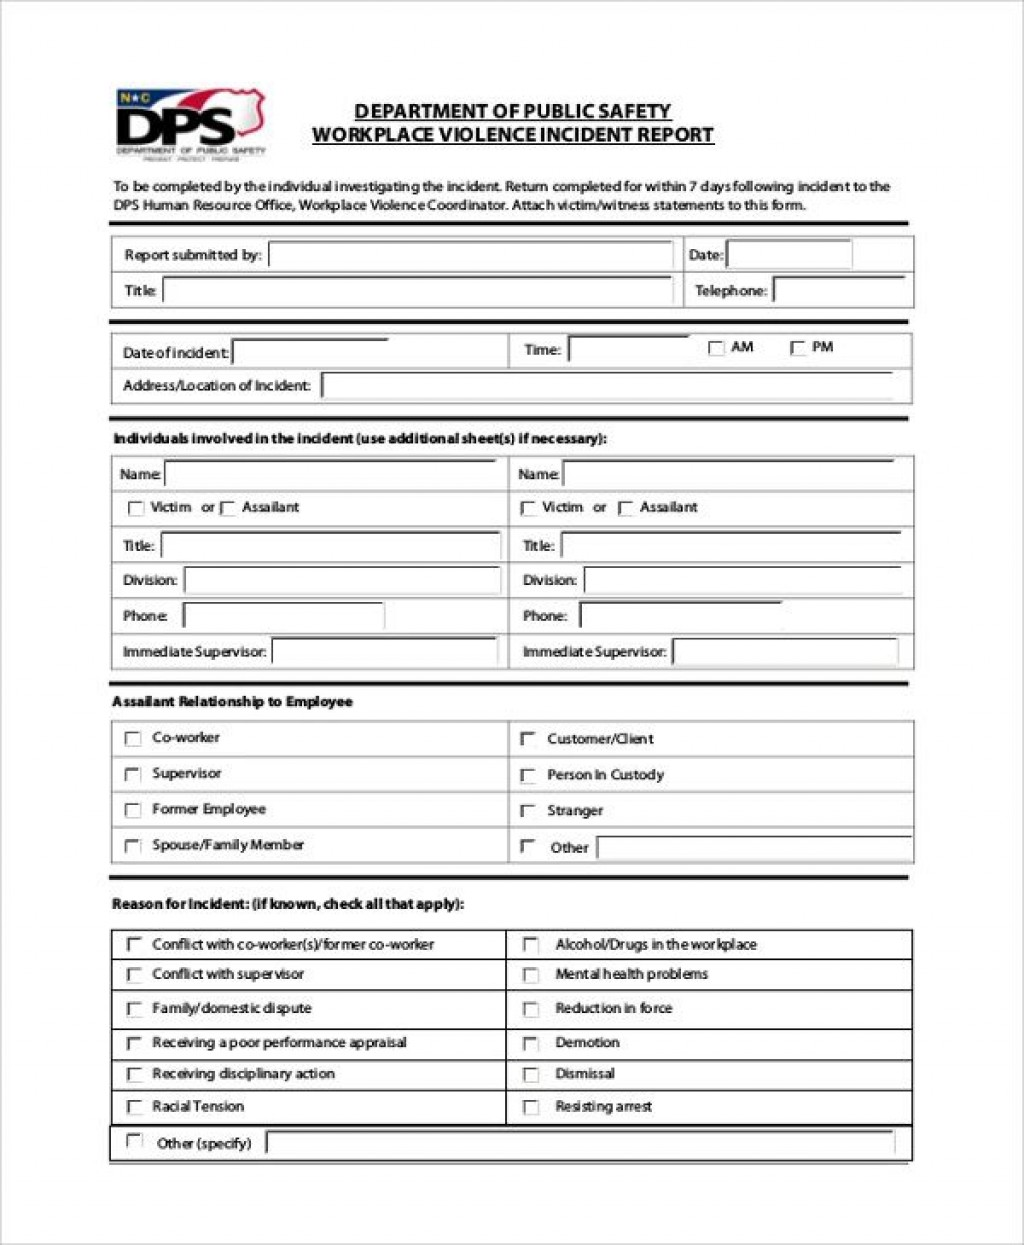 003 Unusual Accident Report Form Template Concept  Incident Victoria Injury FreeLarge